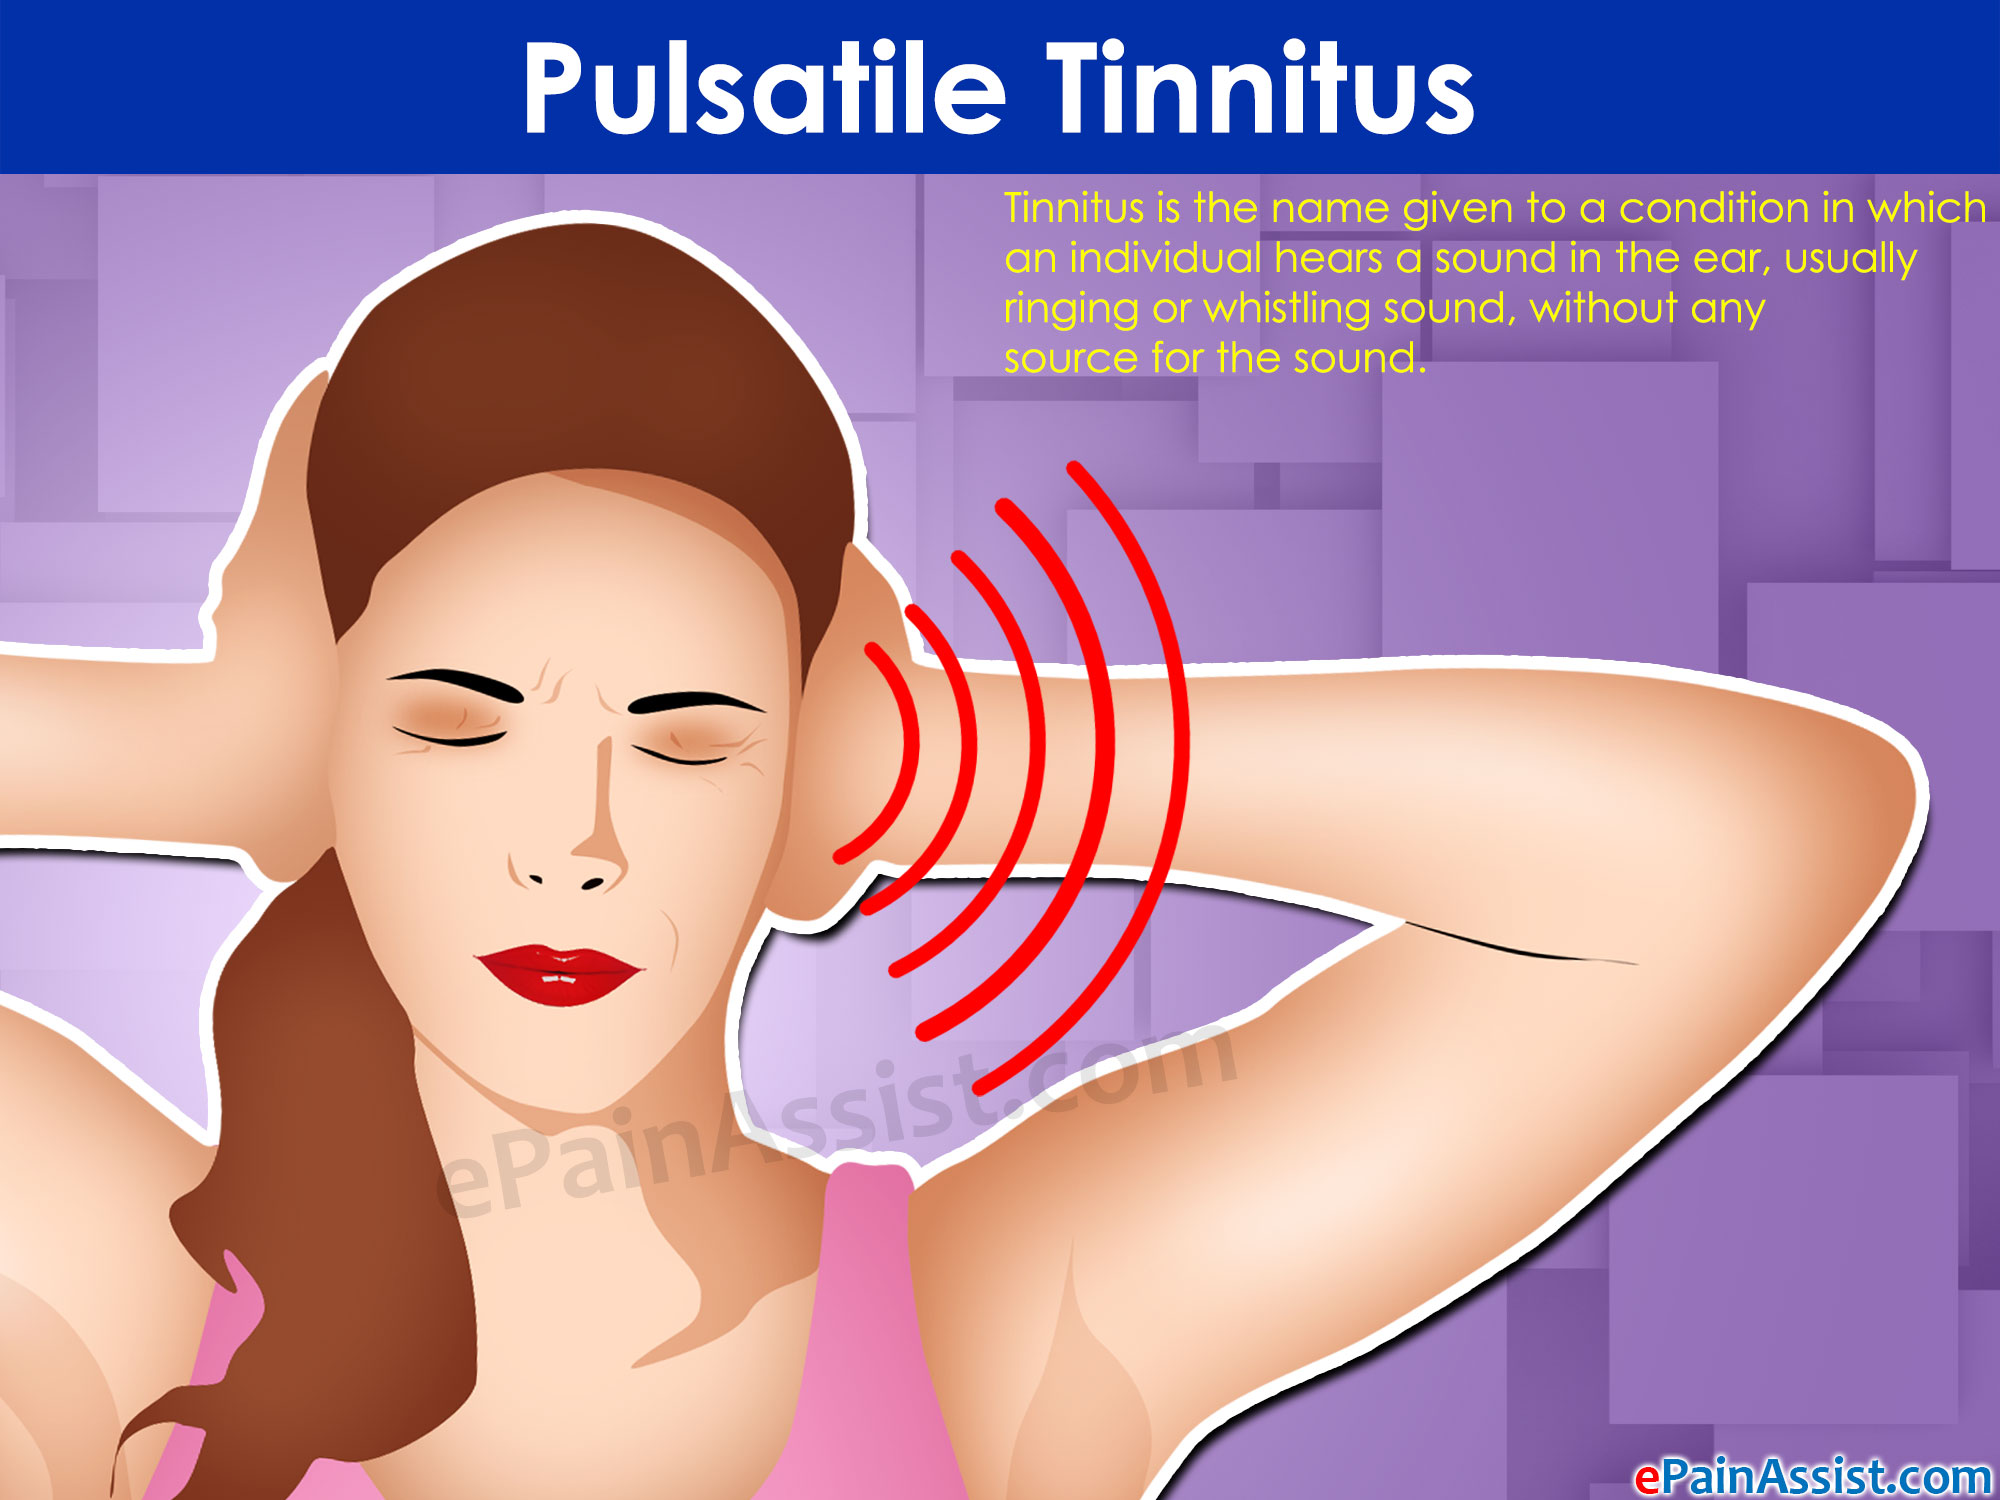 Pulsatile Tinnitus|What Can Cause Heartbeat Sound in Ears?